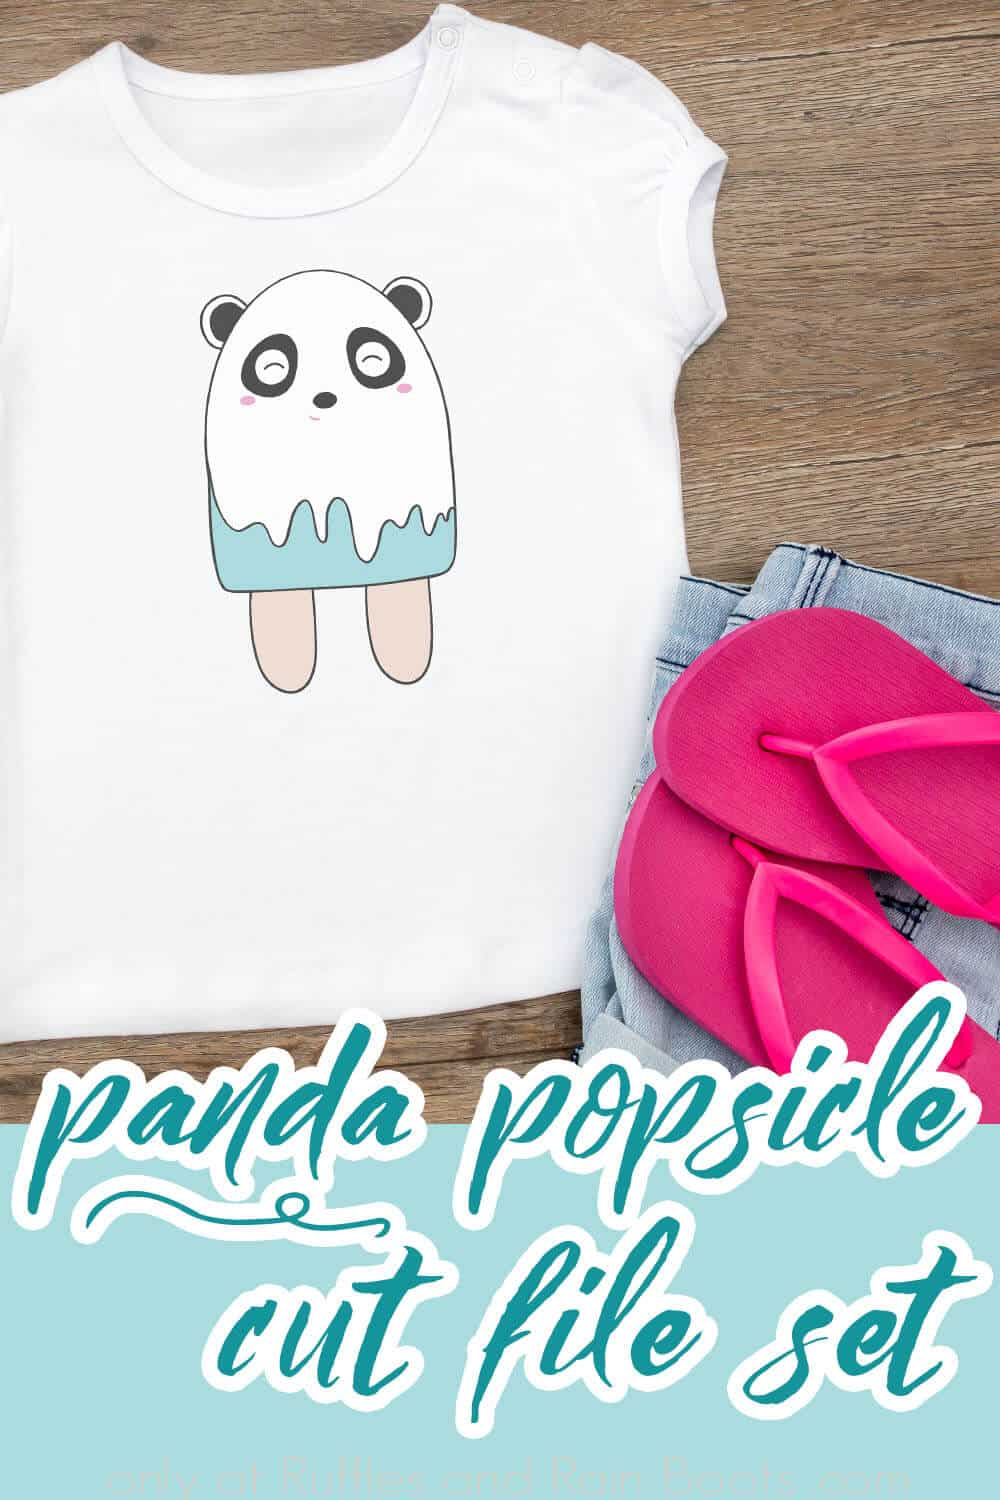 kid's t-shirt with the popsicle panda cut file on it with text which reads panda popsicle cut file set